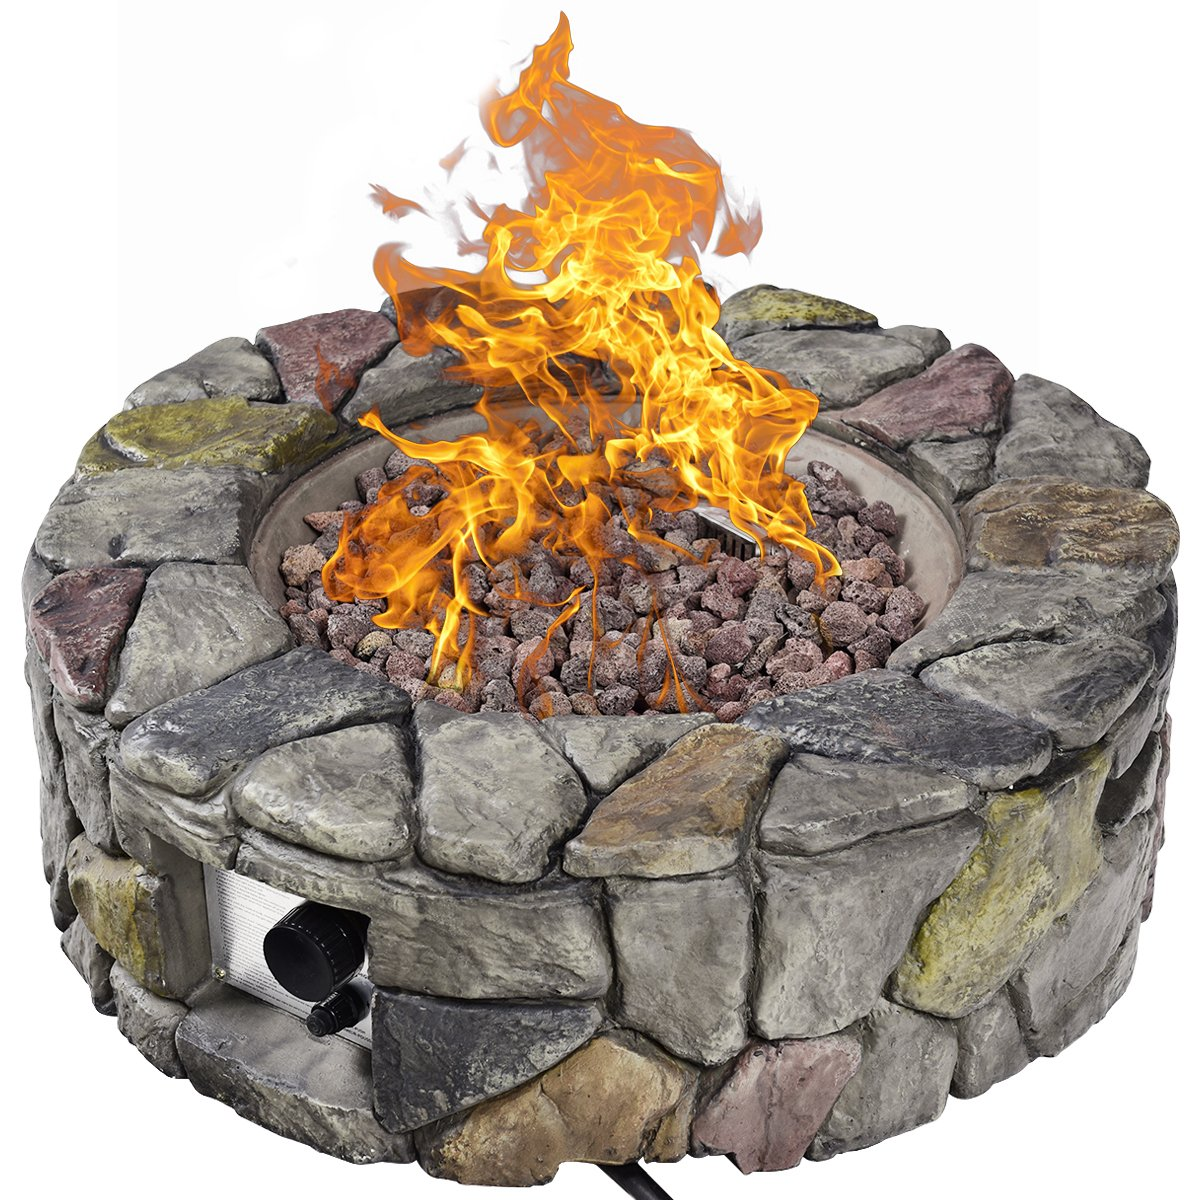 Giantex Gas Fire Pit Table Heavy Duty Outdoor Patio Natural Stone Rocks W/Cover for Backyard, Garden Stainless-Steel Gas Burner by Giantex